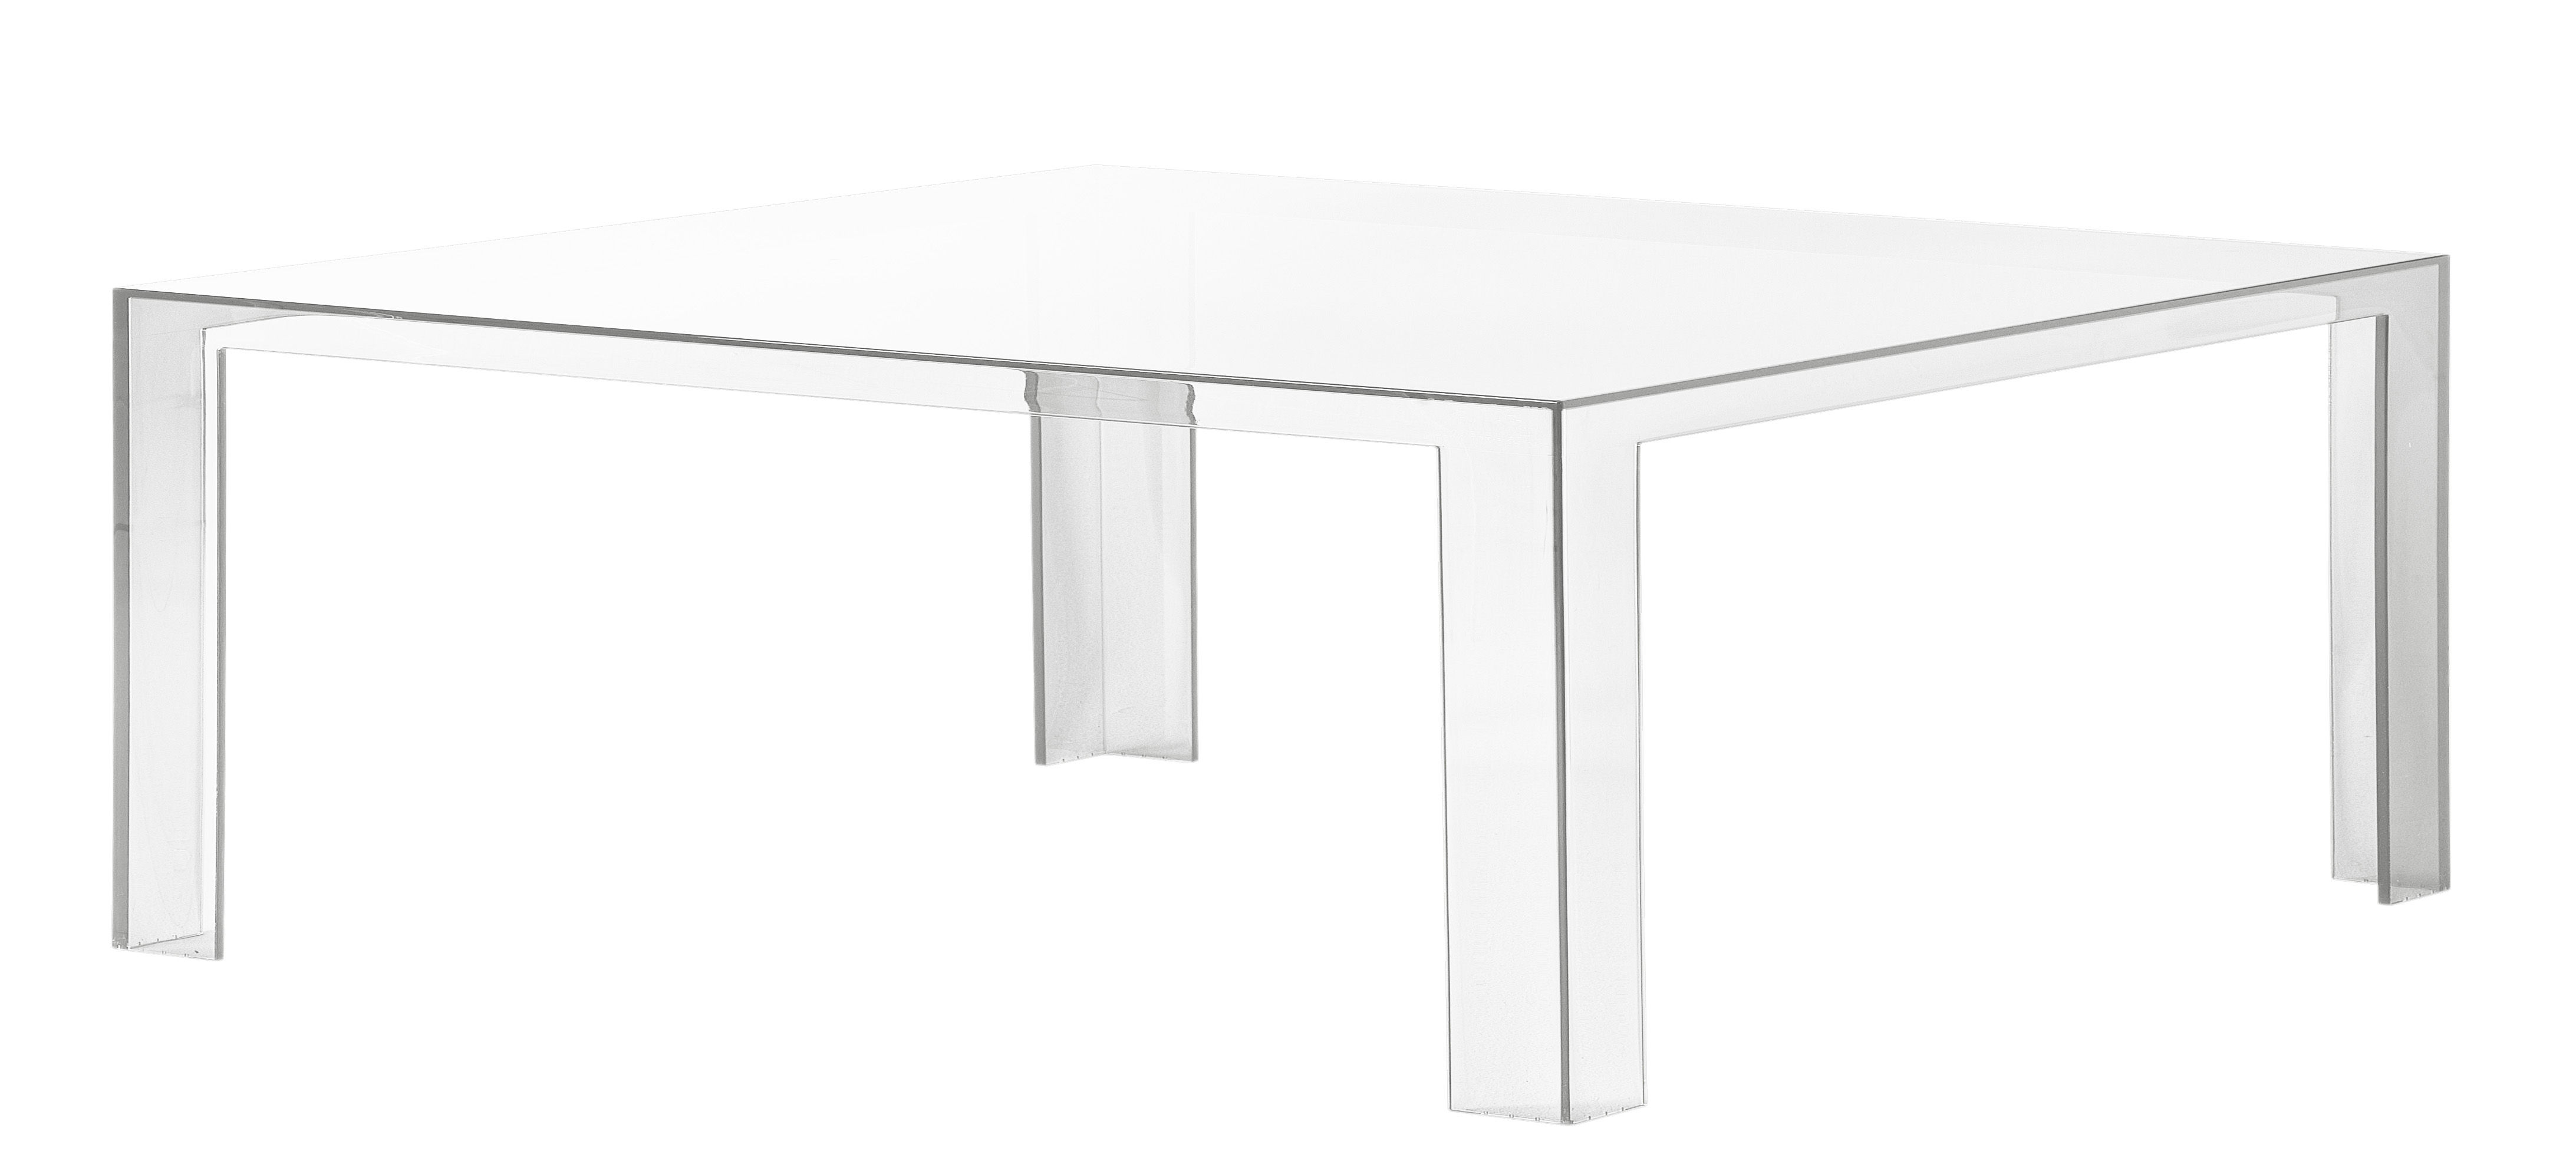 Möbel - Invisible Low Couchtisch 31 cm - Kartell - Kristall - PMMA